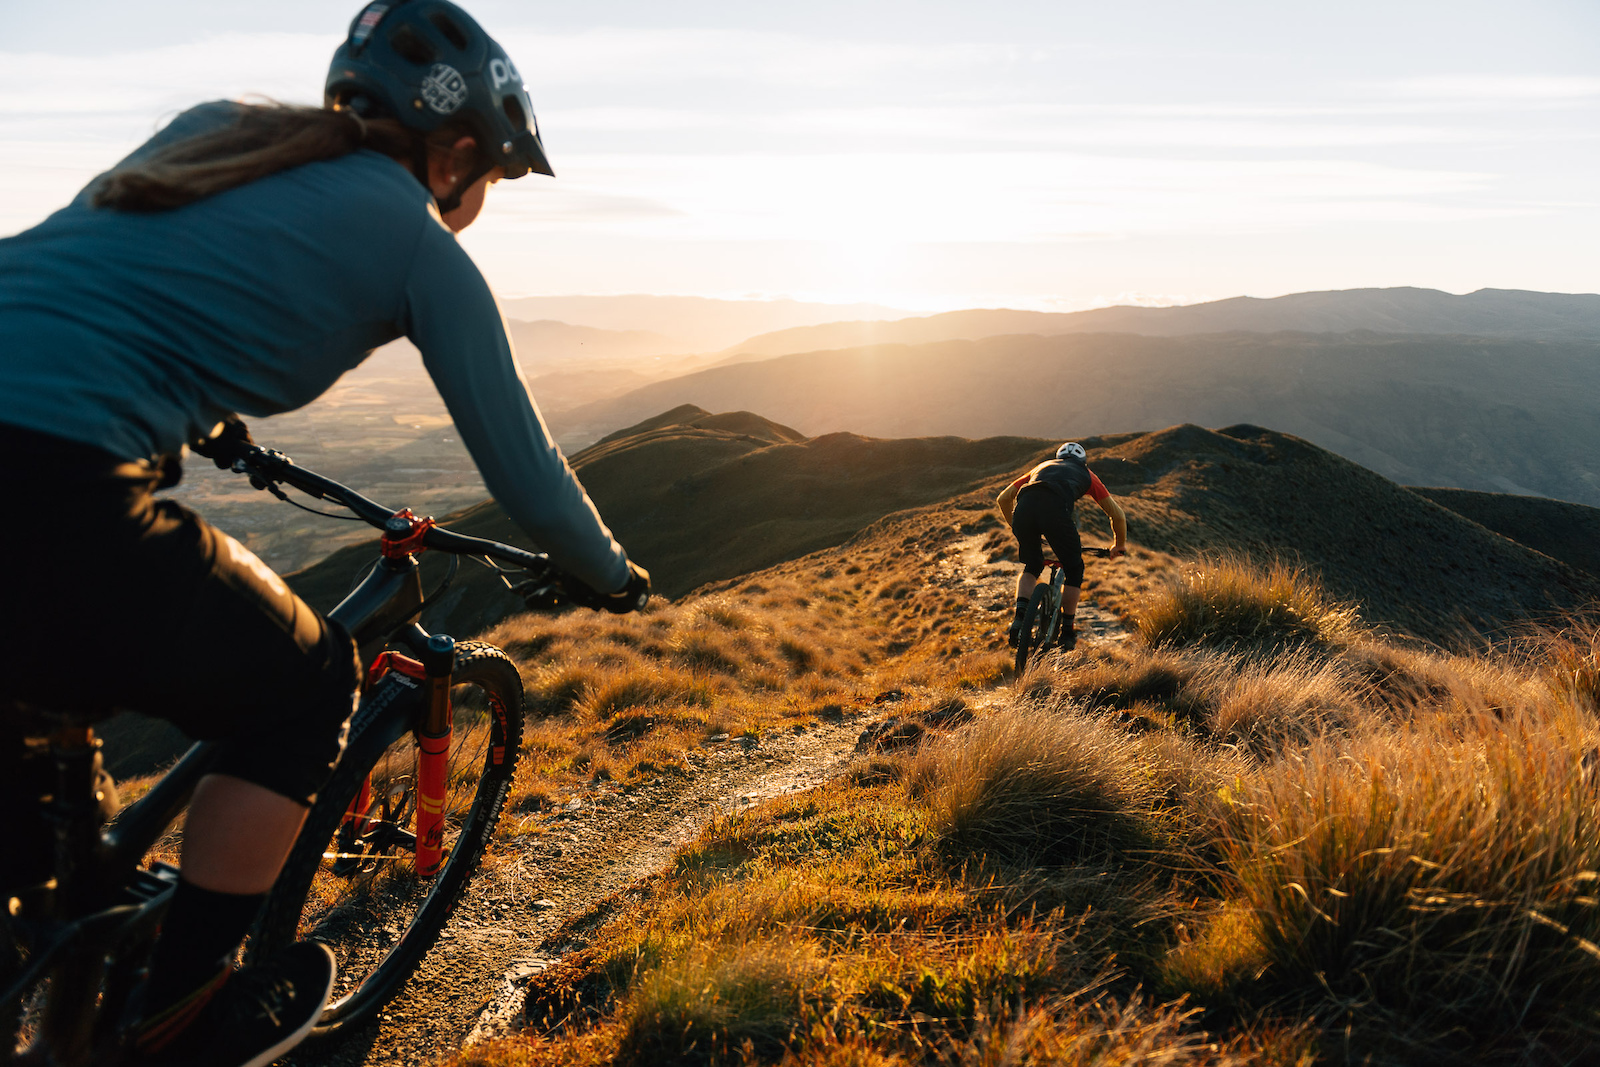 Brooke chases Conor down a special section of single track easiest to get to by helicopter.